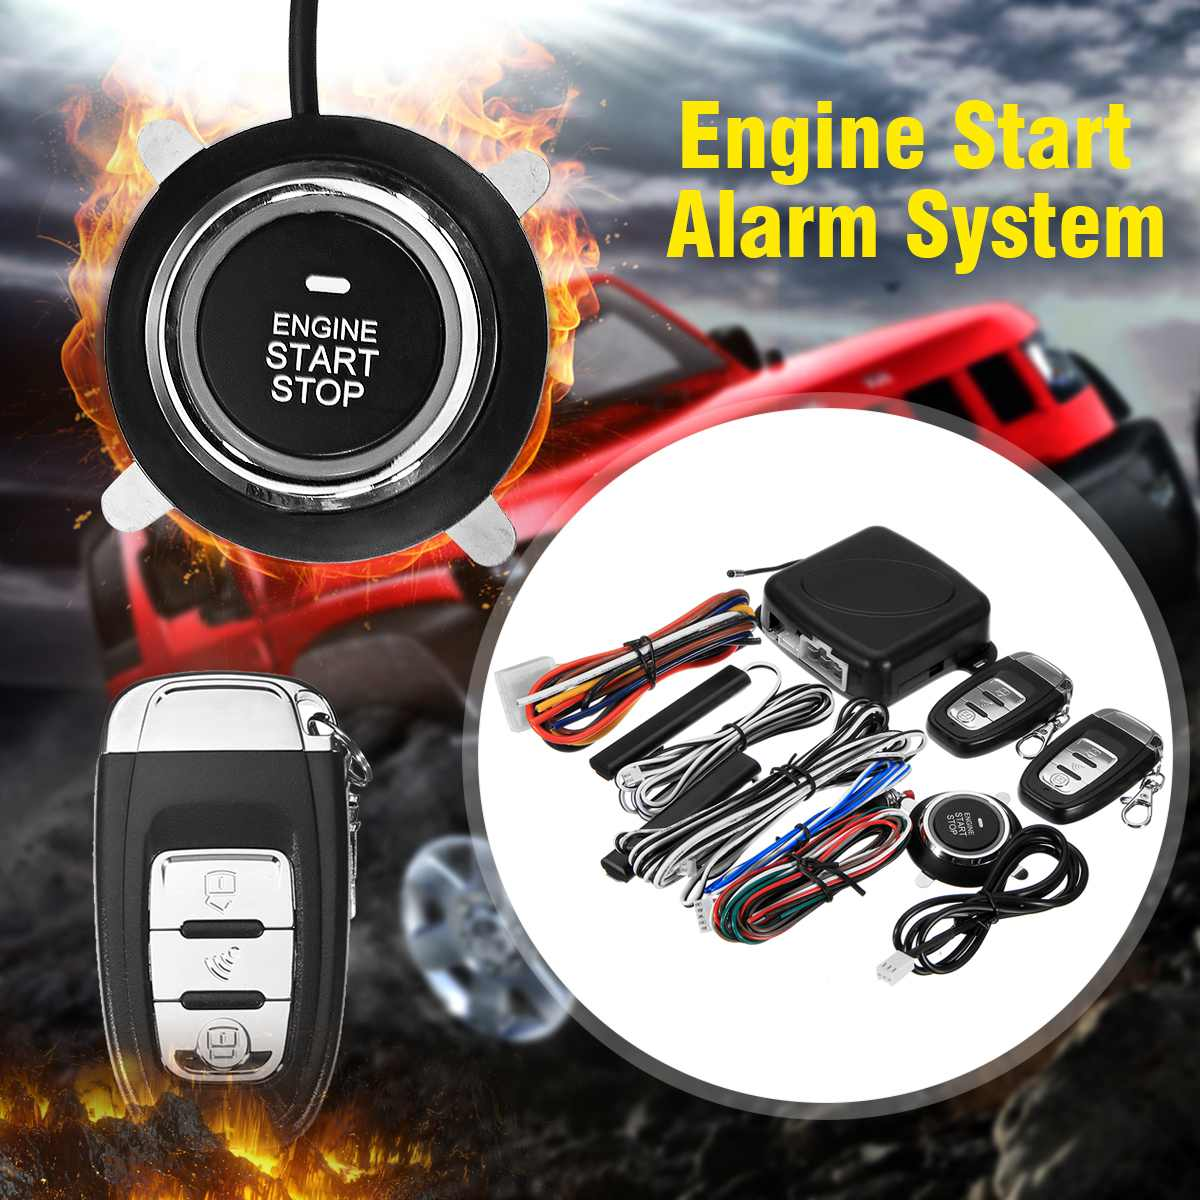 12V Auto SUV Car Smart Alarm System Push Engine Start Stop Button Lock Ignition Immobilizer with Remote Keyless Go Entry System